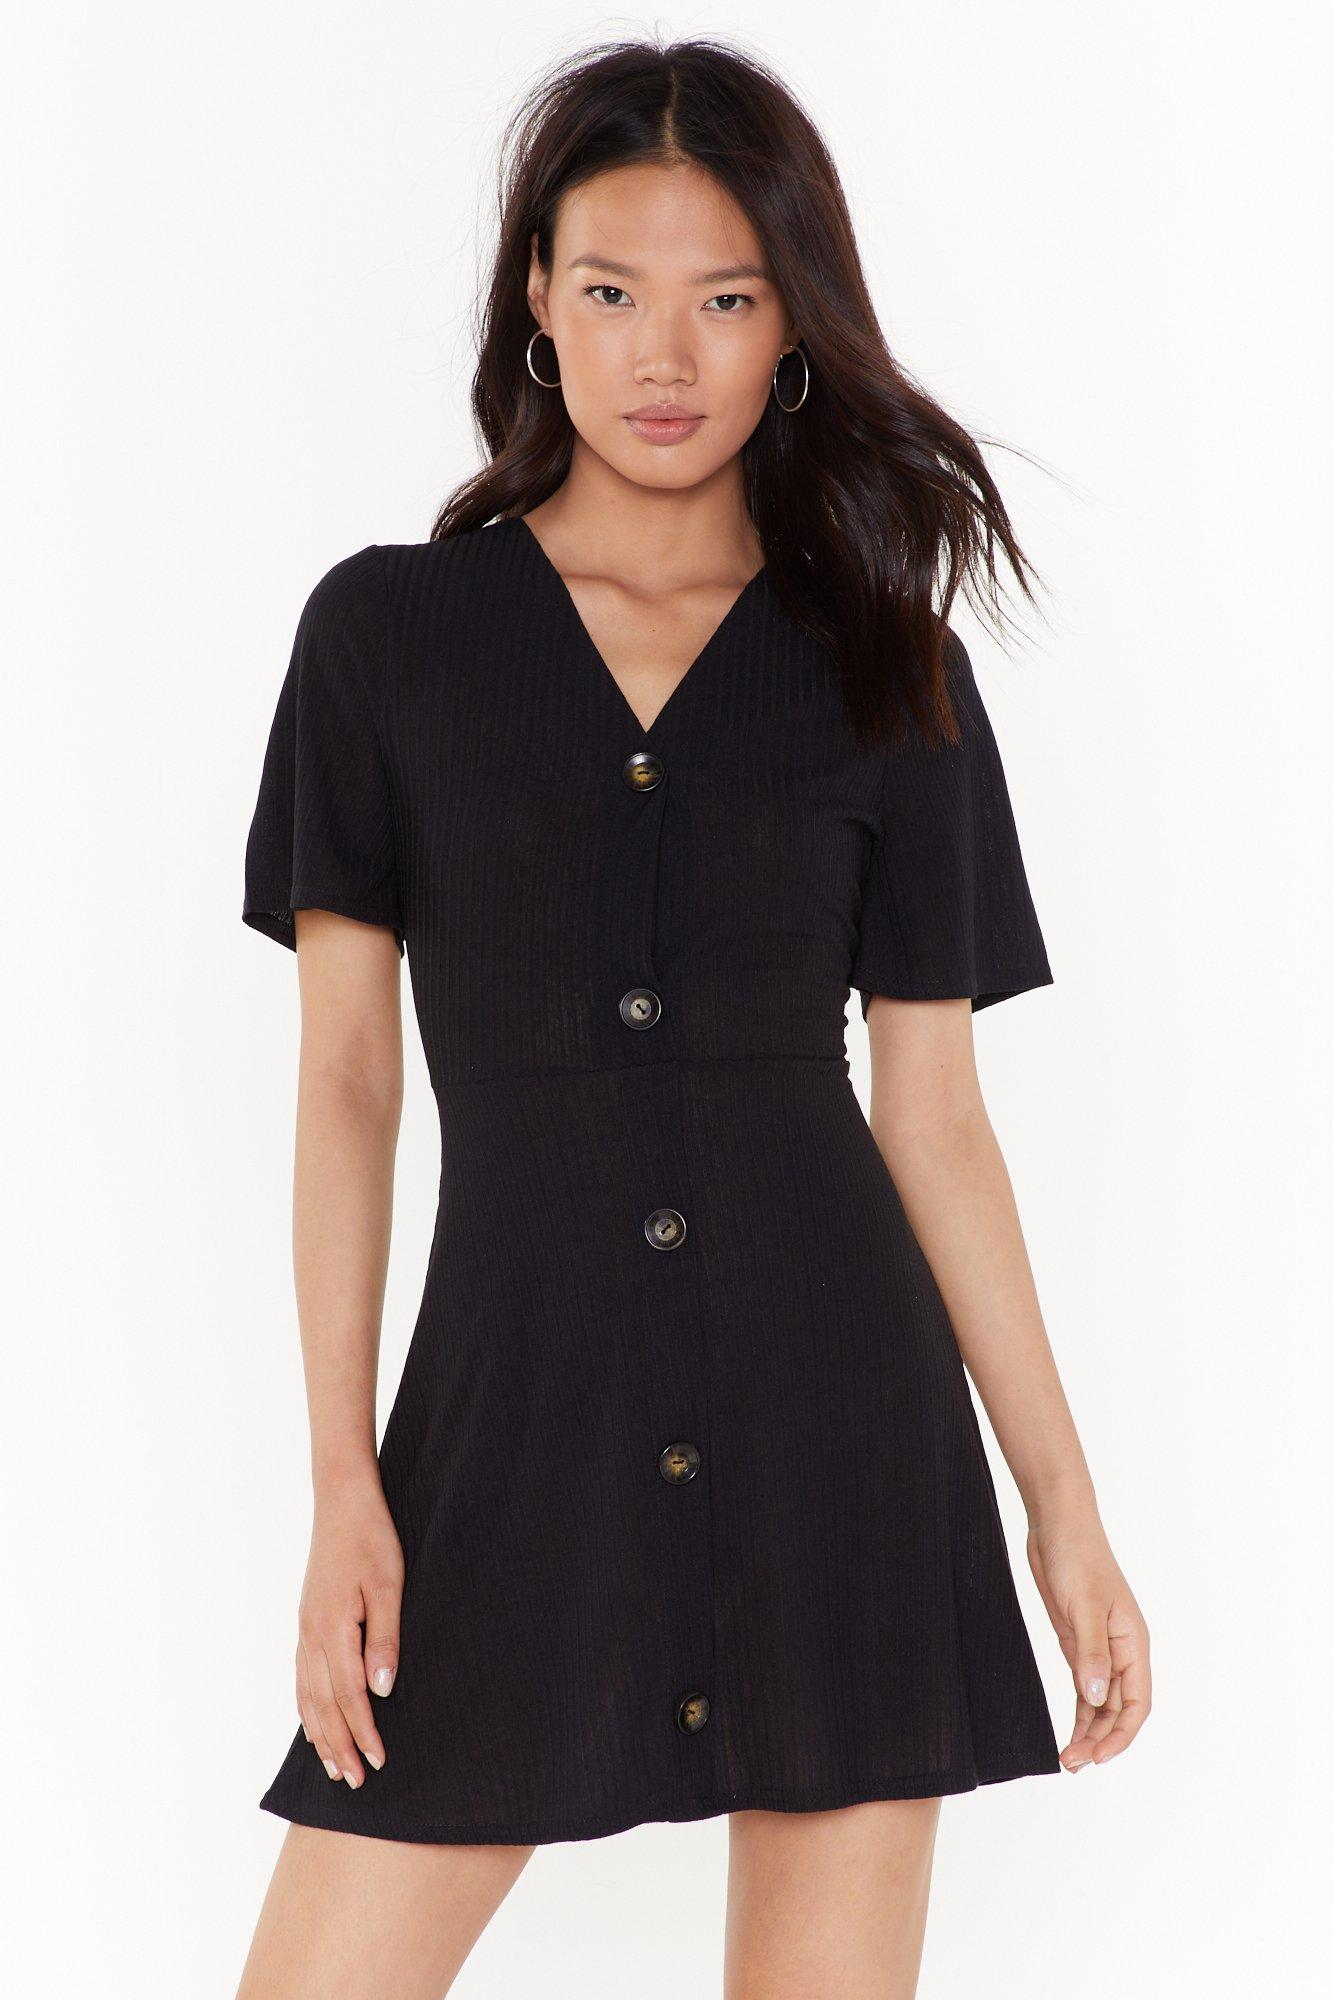 Image of Get Button With It Ribbed Mini Dress